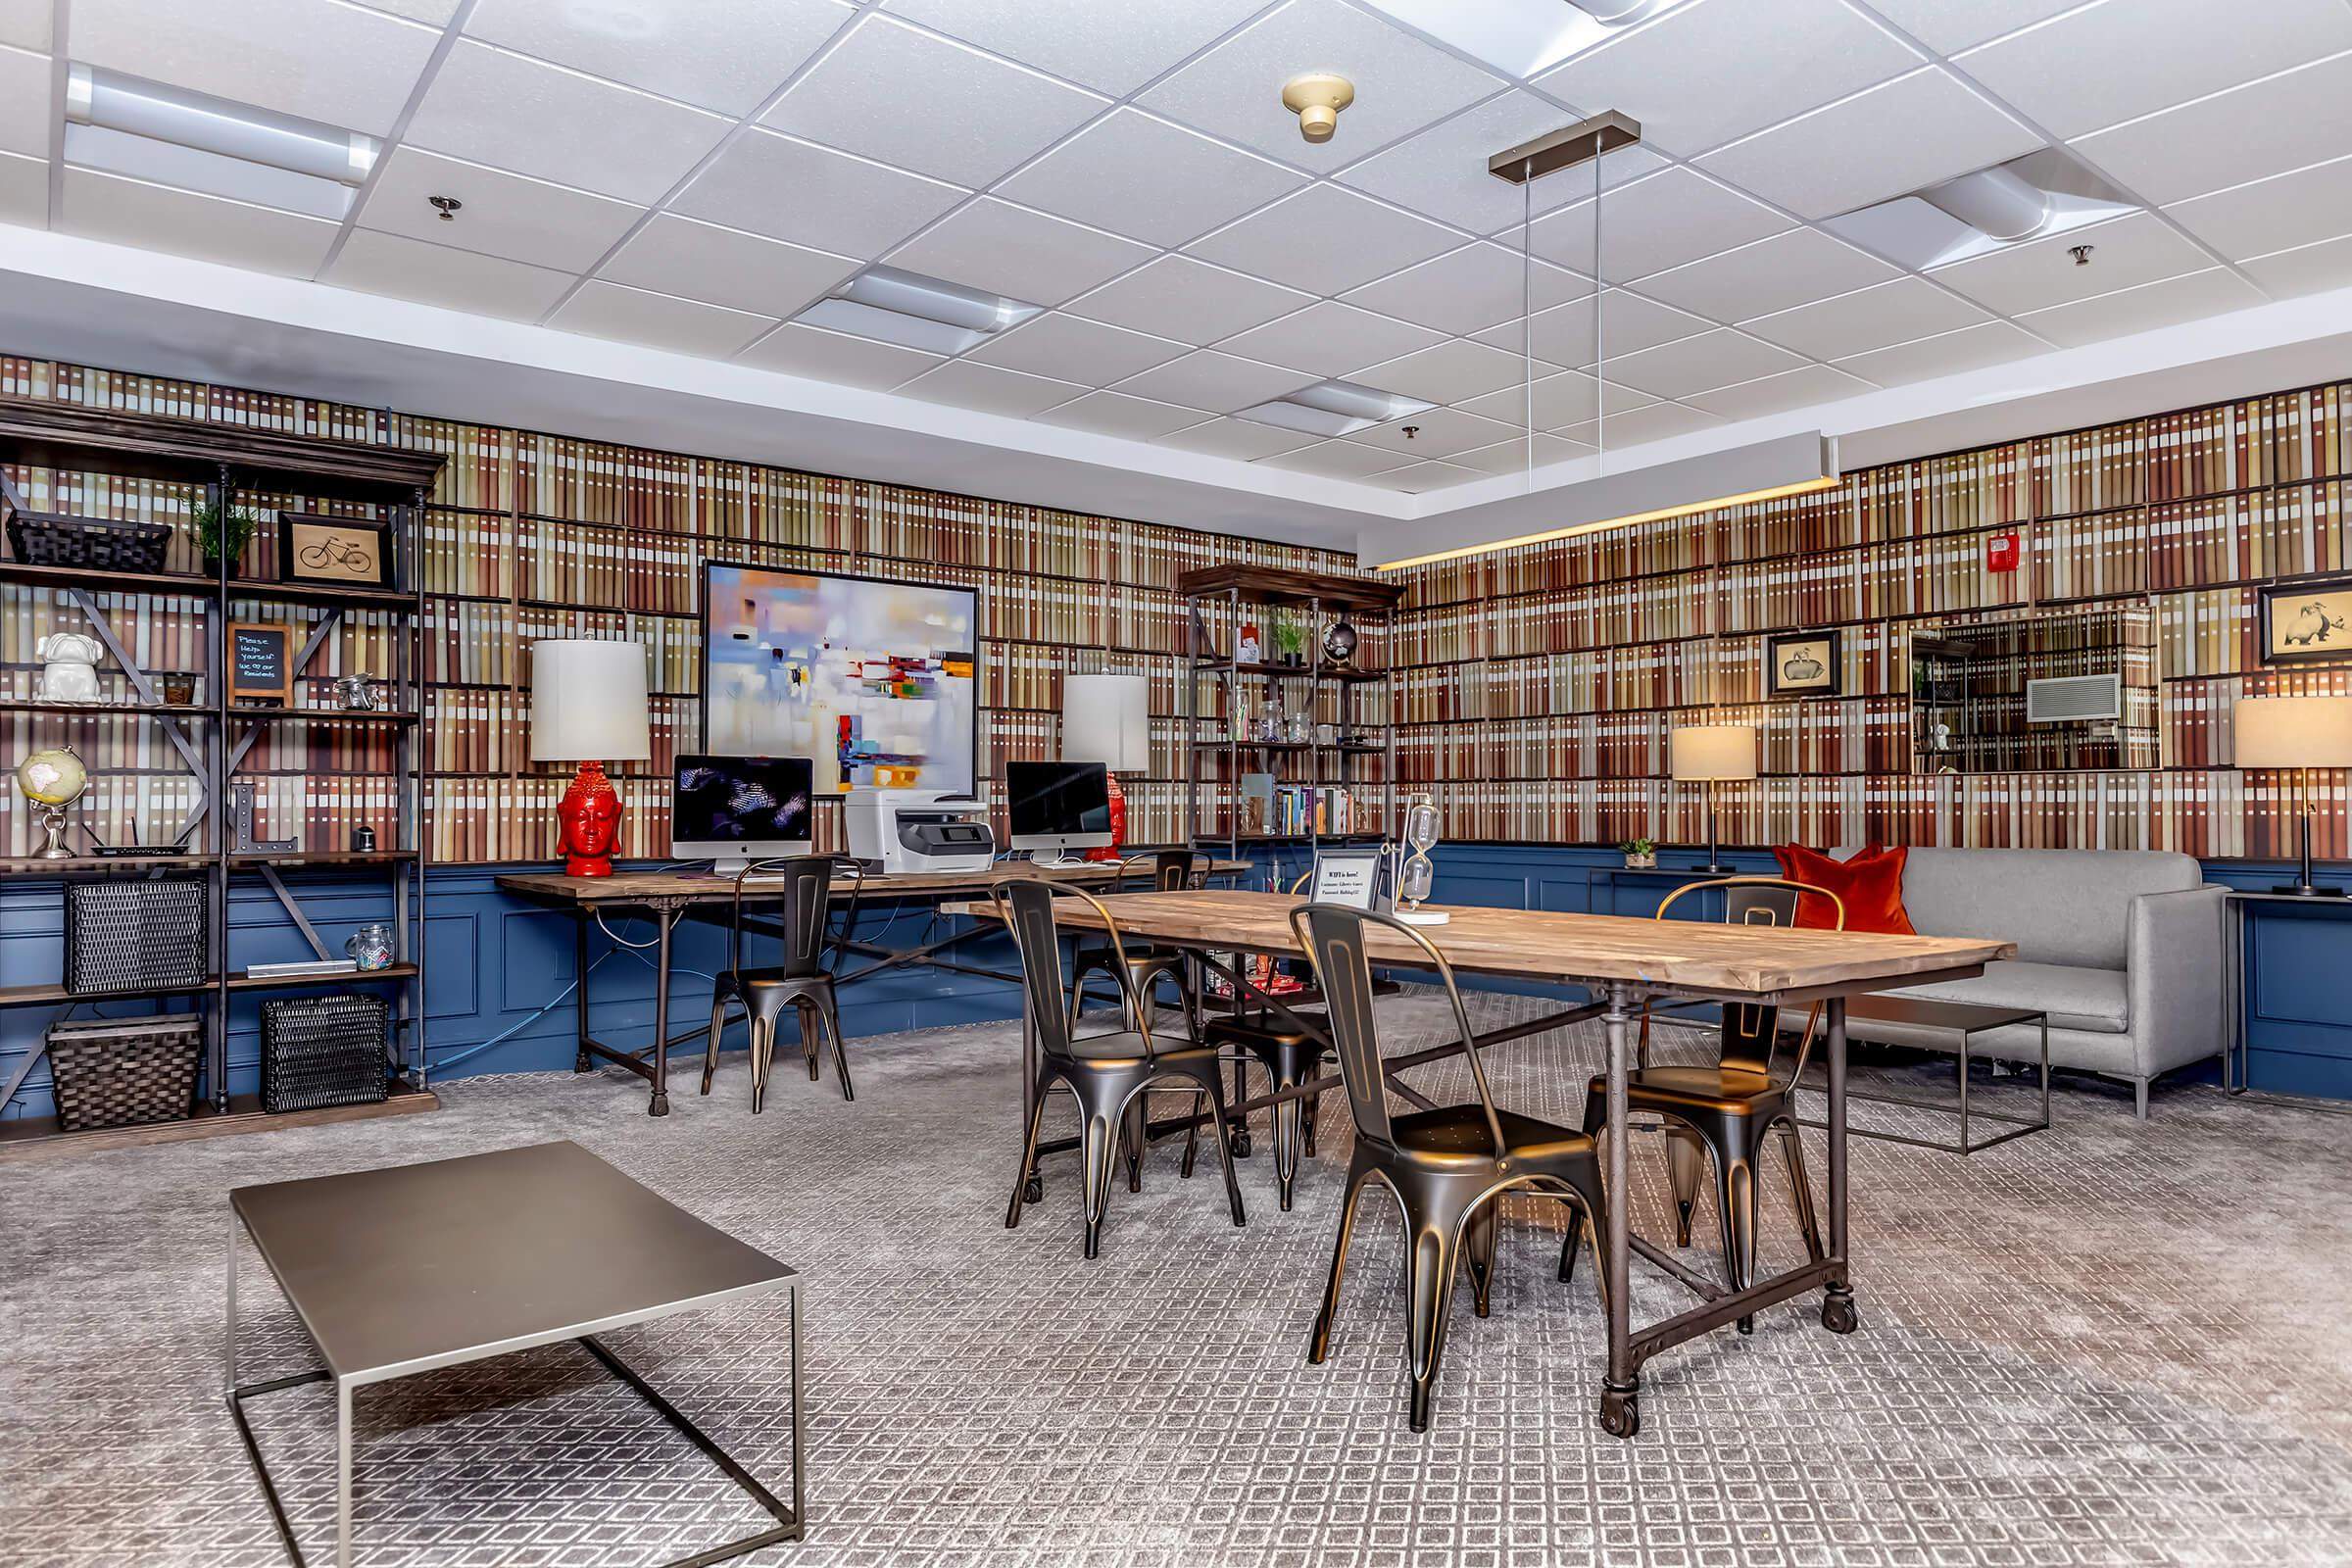 a room filled with furniture and a table in a library